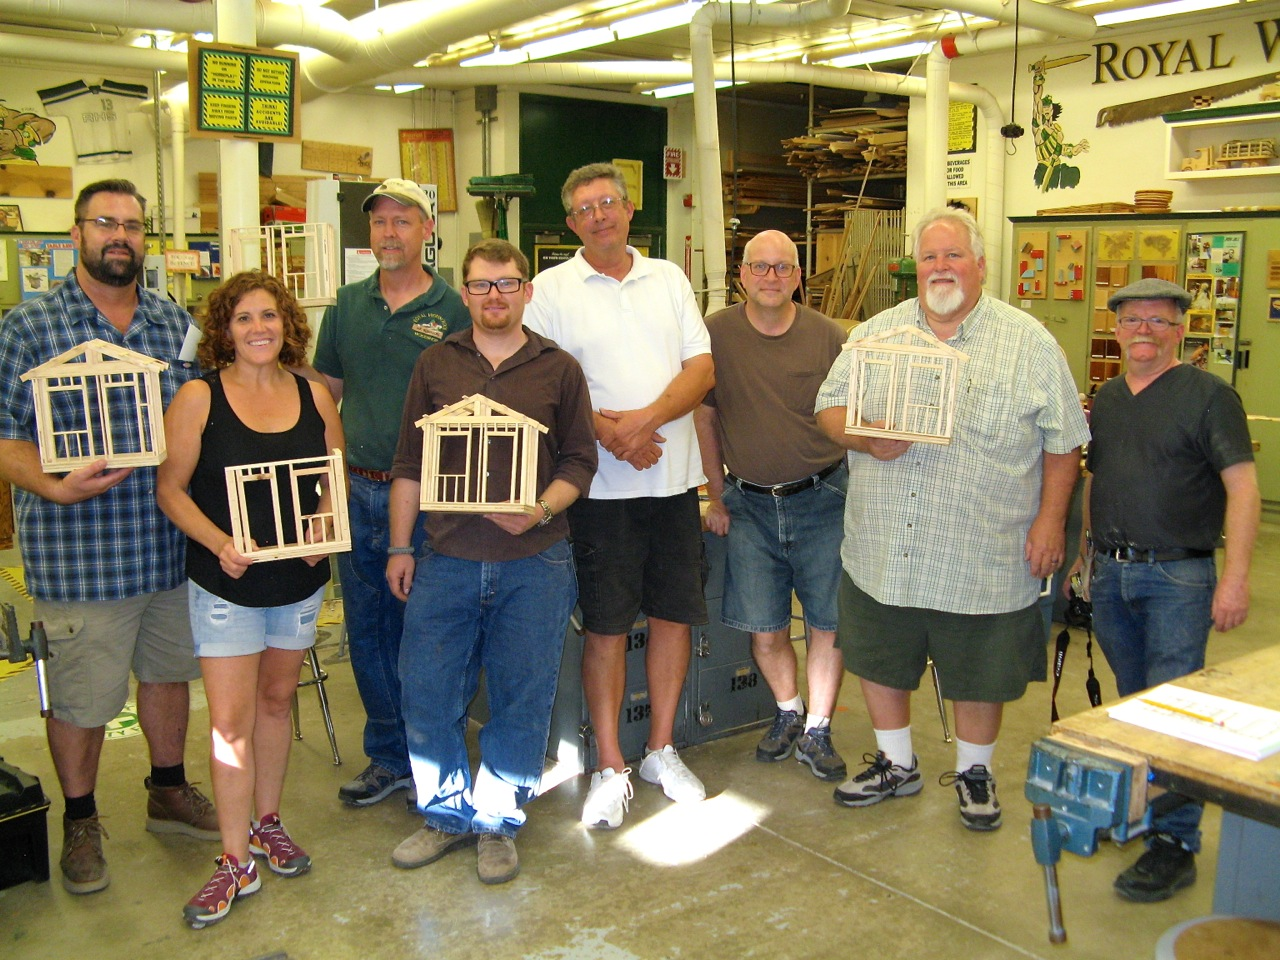 District Teachers at the annual Royal kick-off making cross-cut sleds for their  classrooms!